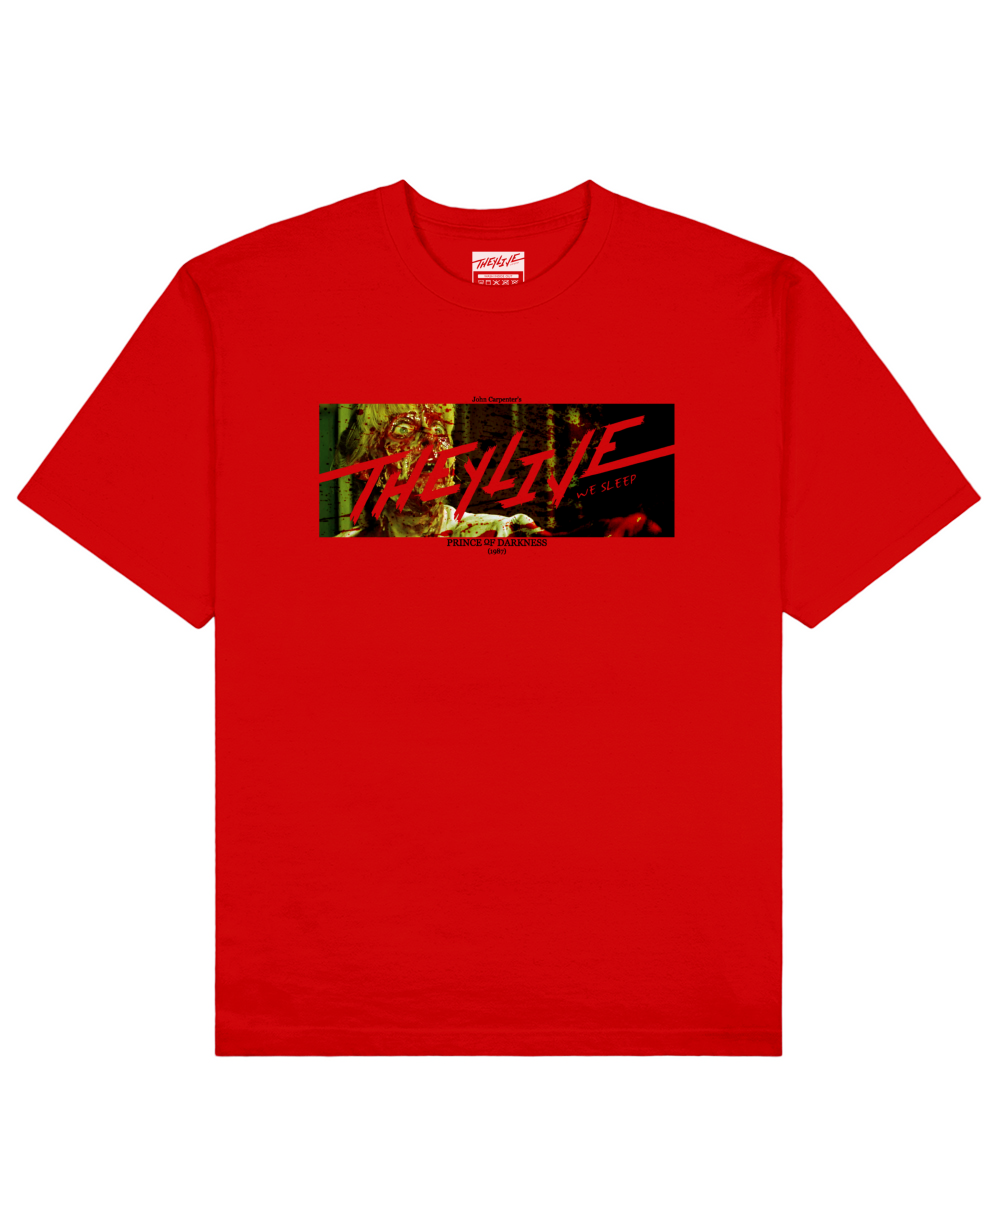 Prince Of Darkness Print T-Shirt in Red - T-Shirts - THEYLIVE - BRANMA